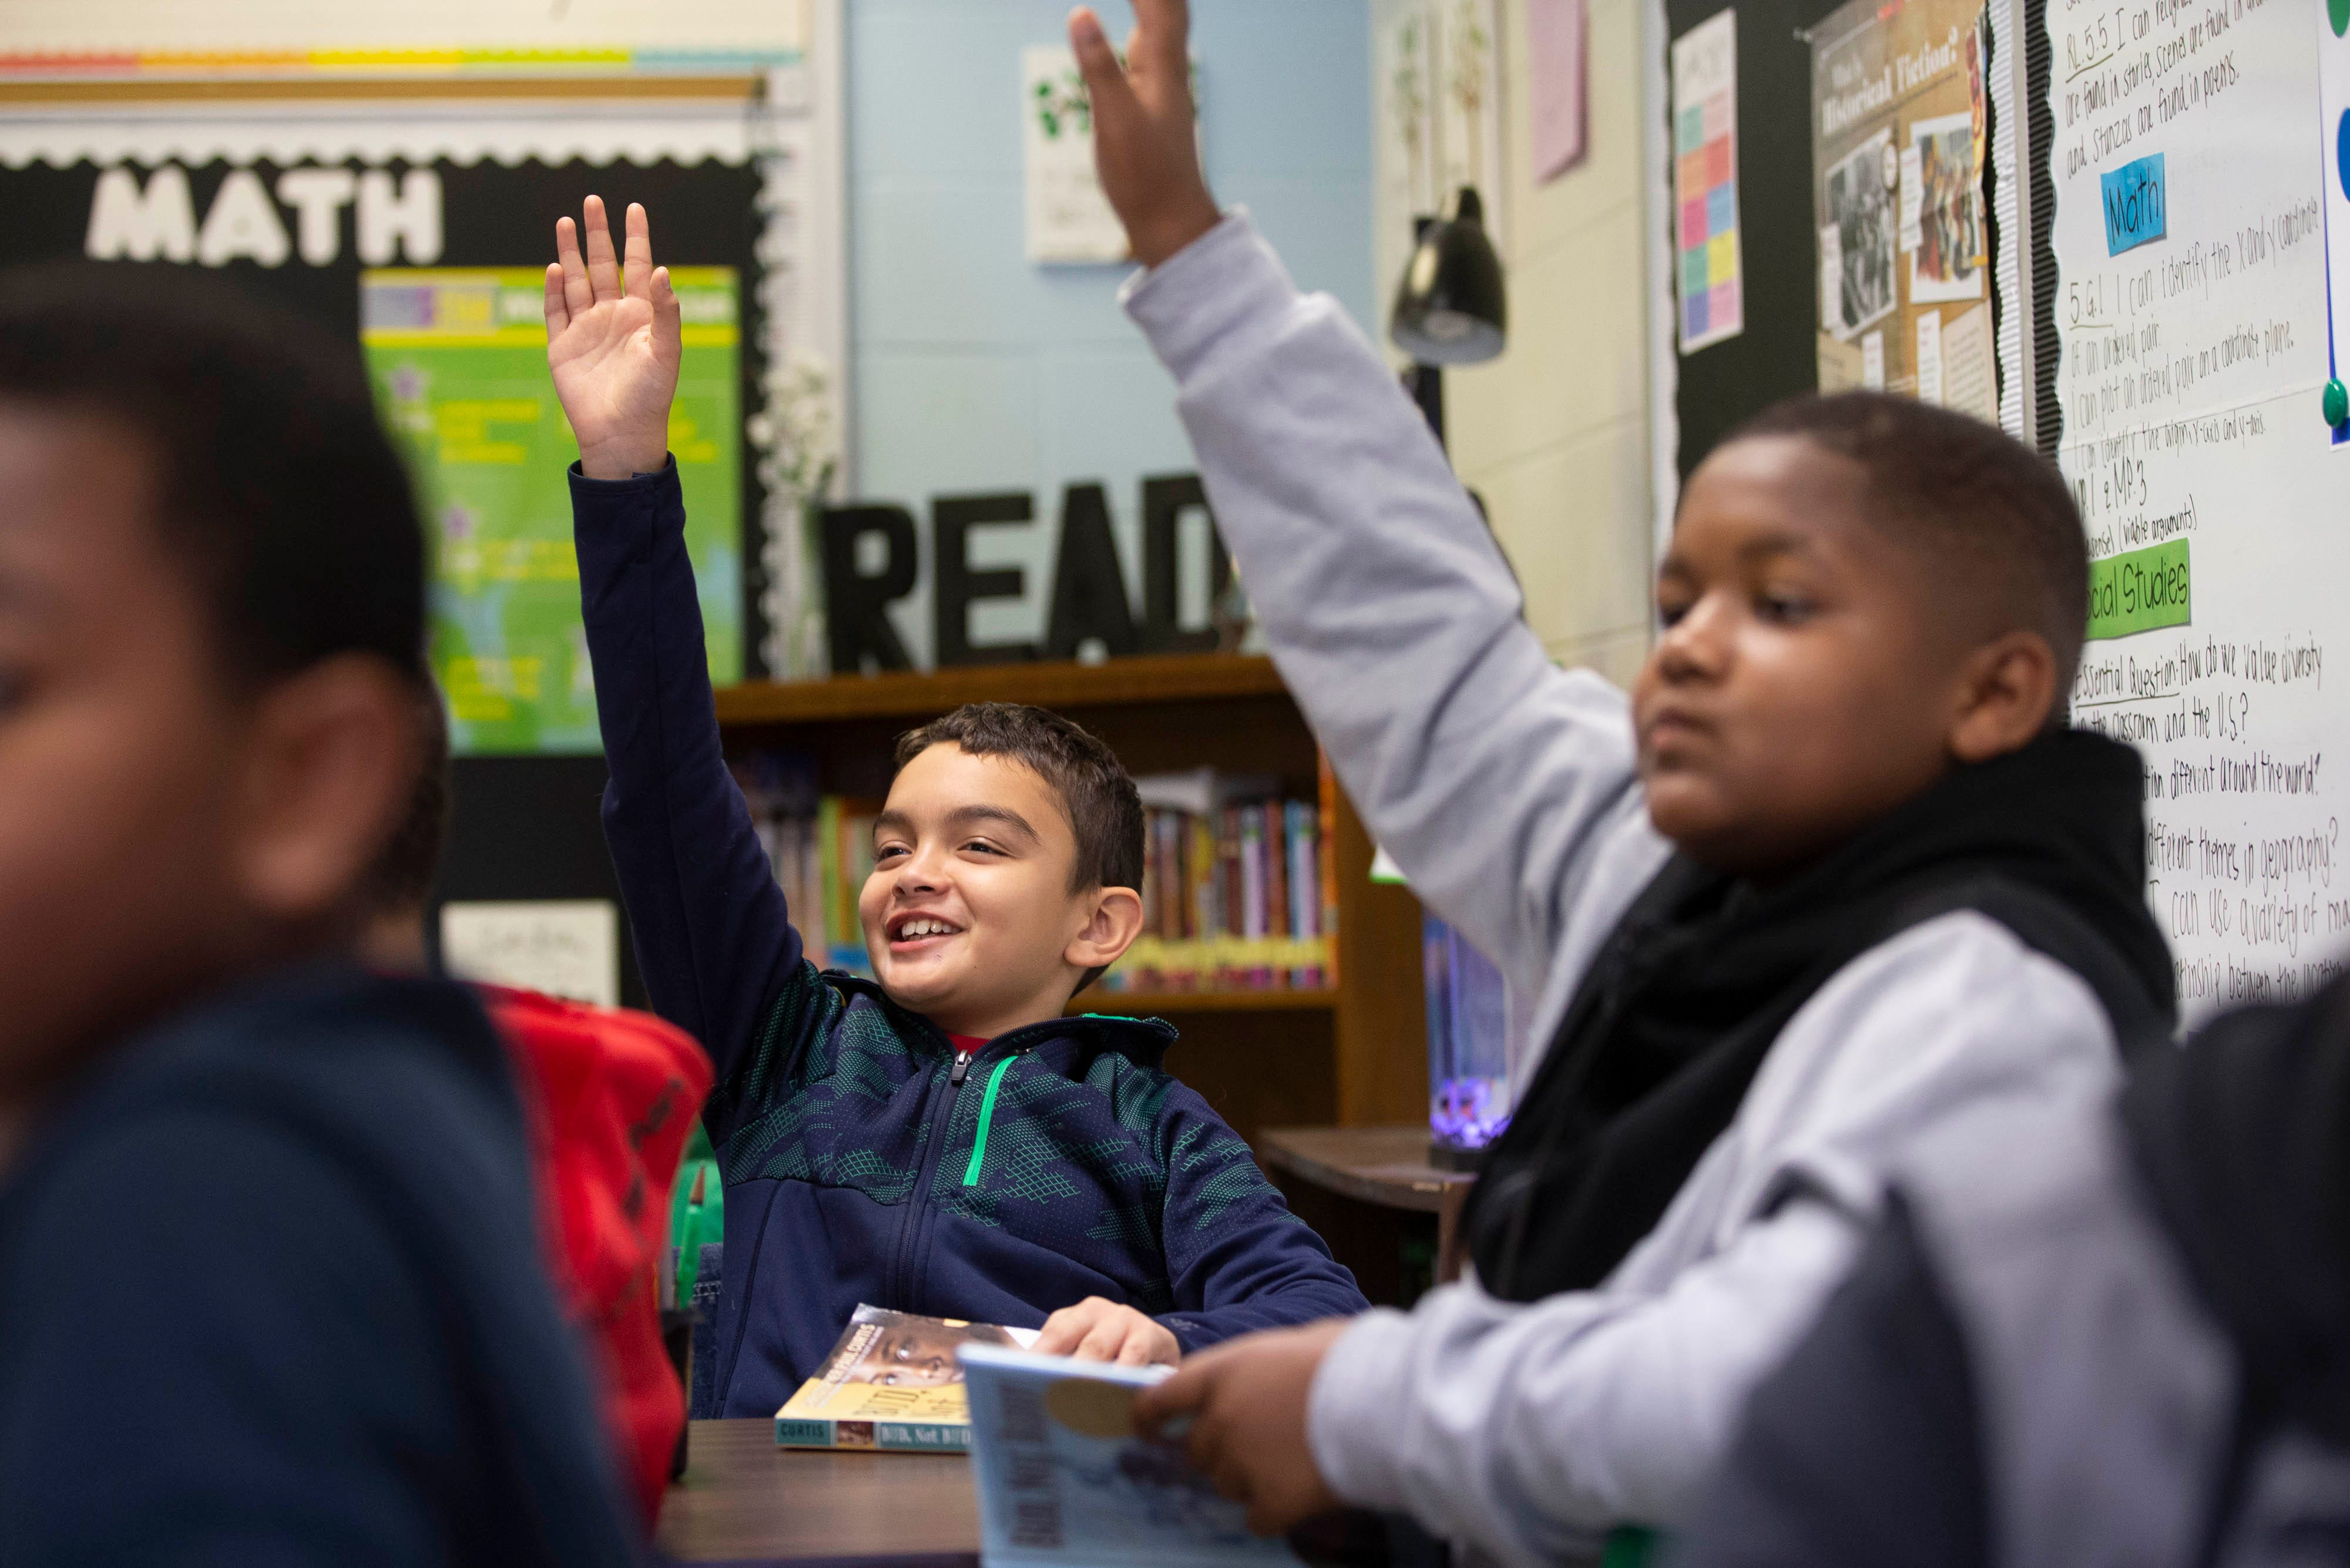 Students at Cochran Elementary School, located near the University of Louisville, raise their hands during a reading lesson. Oct. 18, 2019